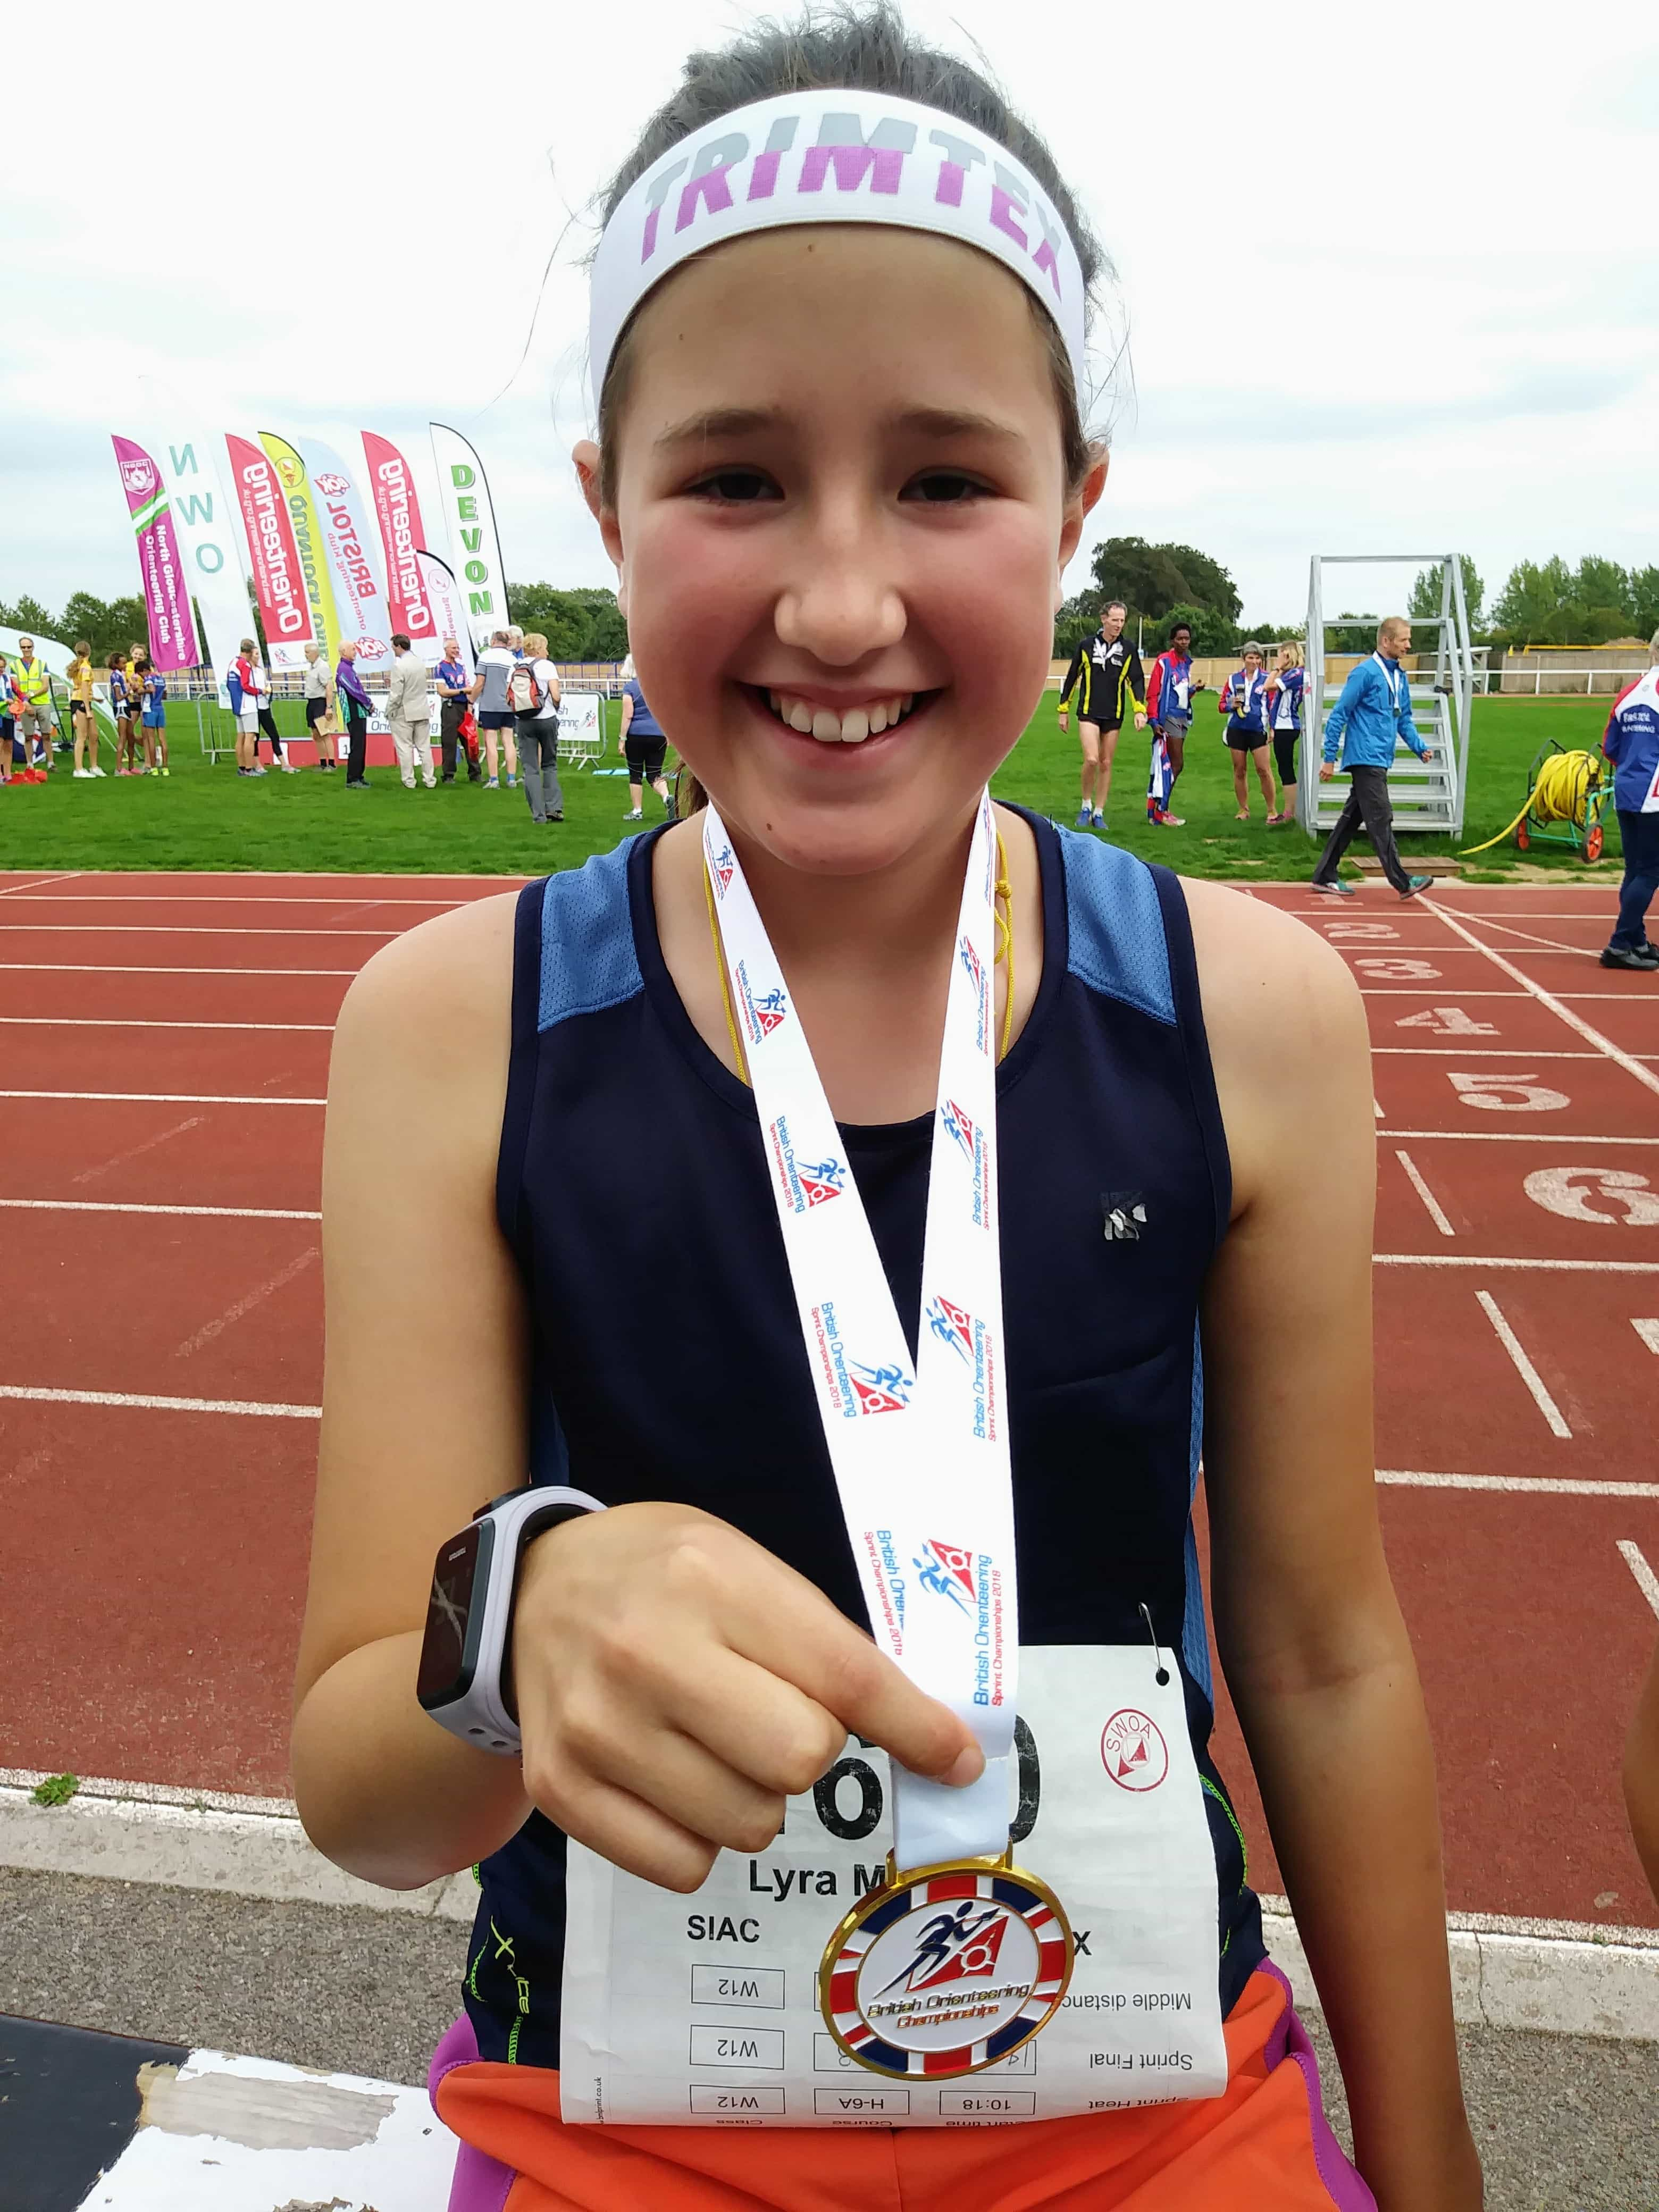 Lyra with medal